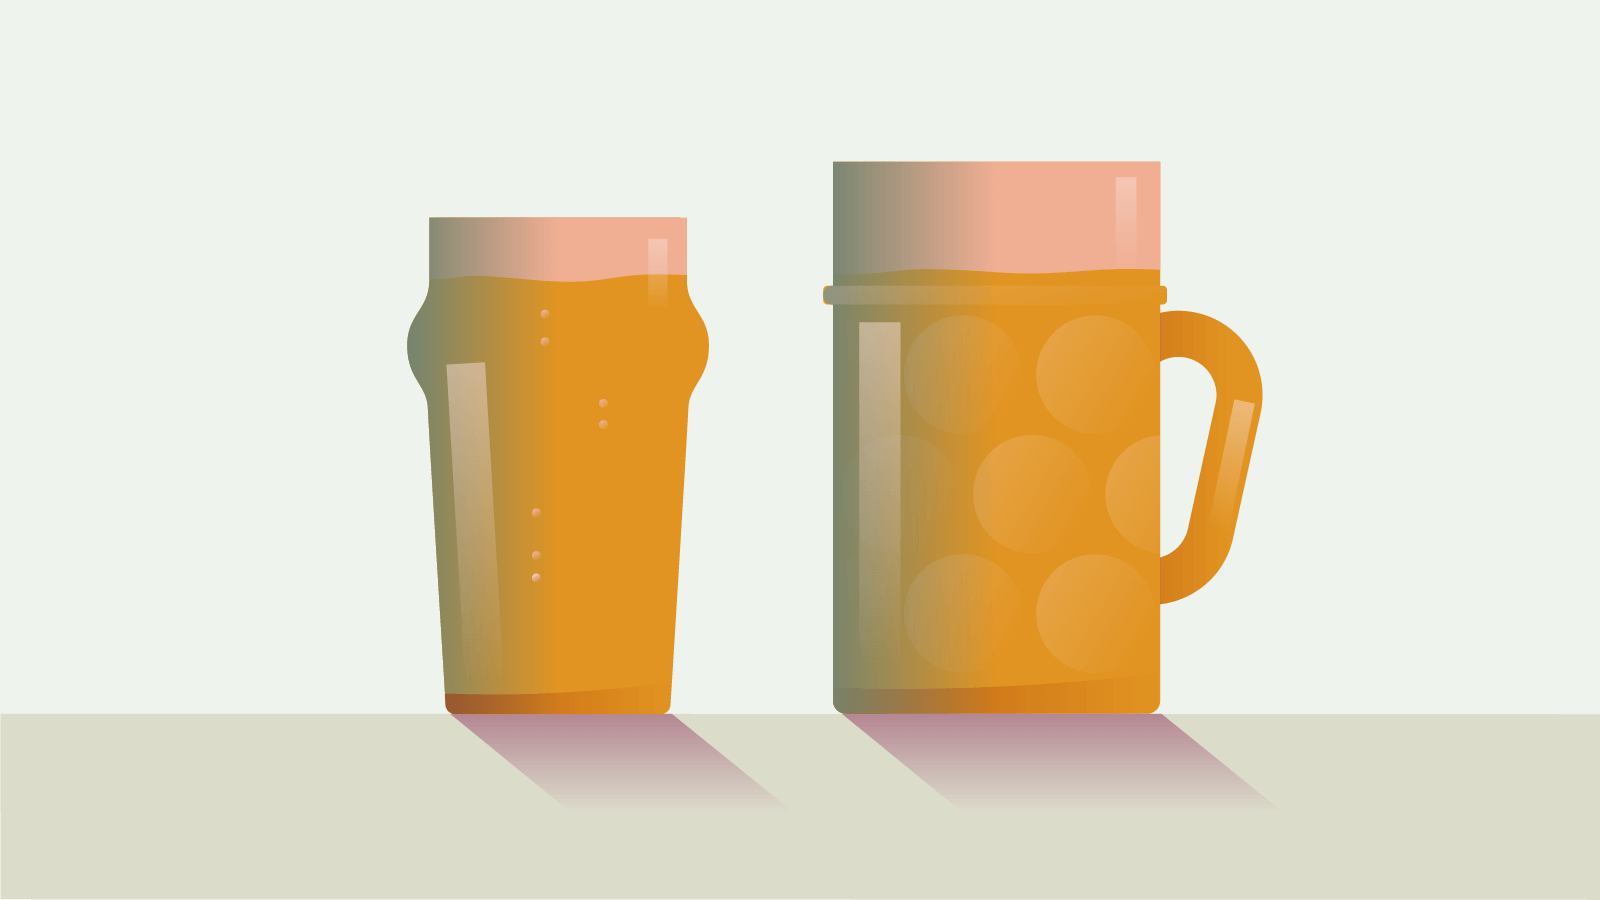 Illustration of two different sized beer glasses